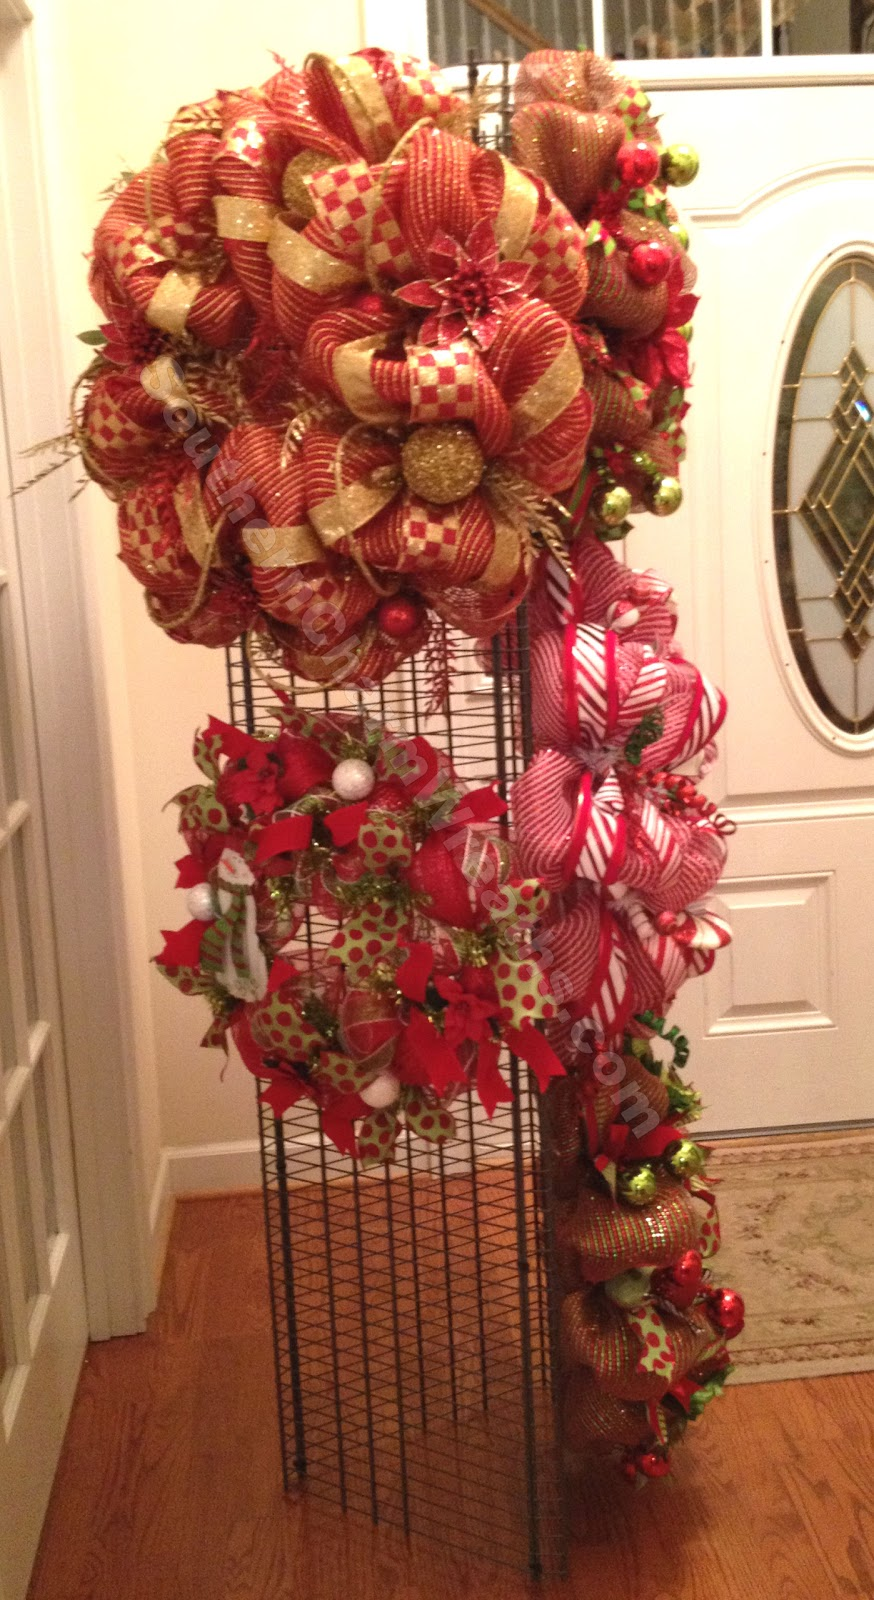 How To Make A Wreath Craft Show Display or Storage